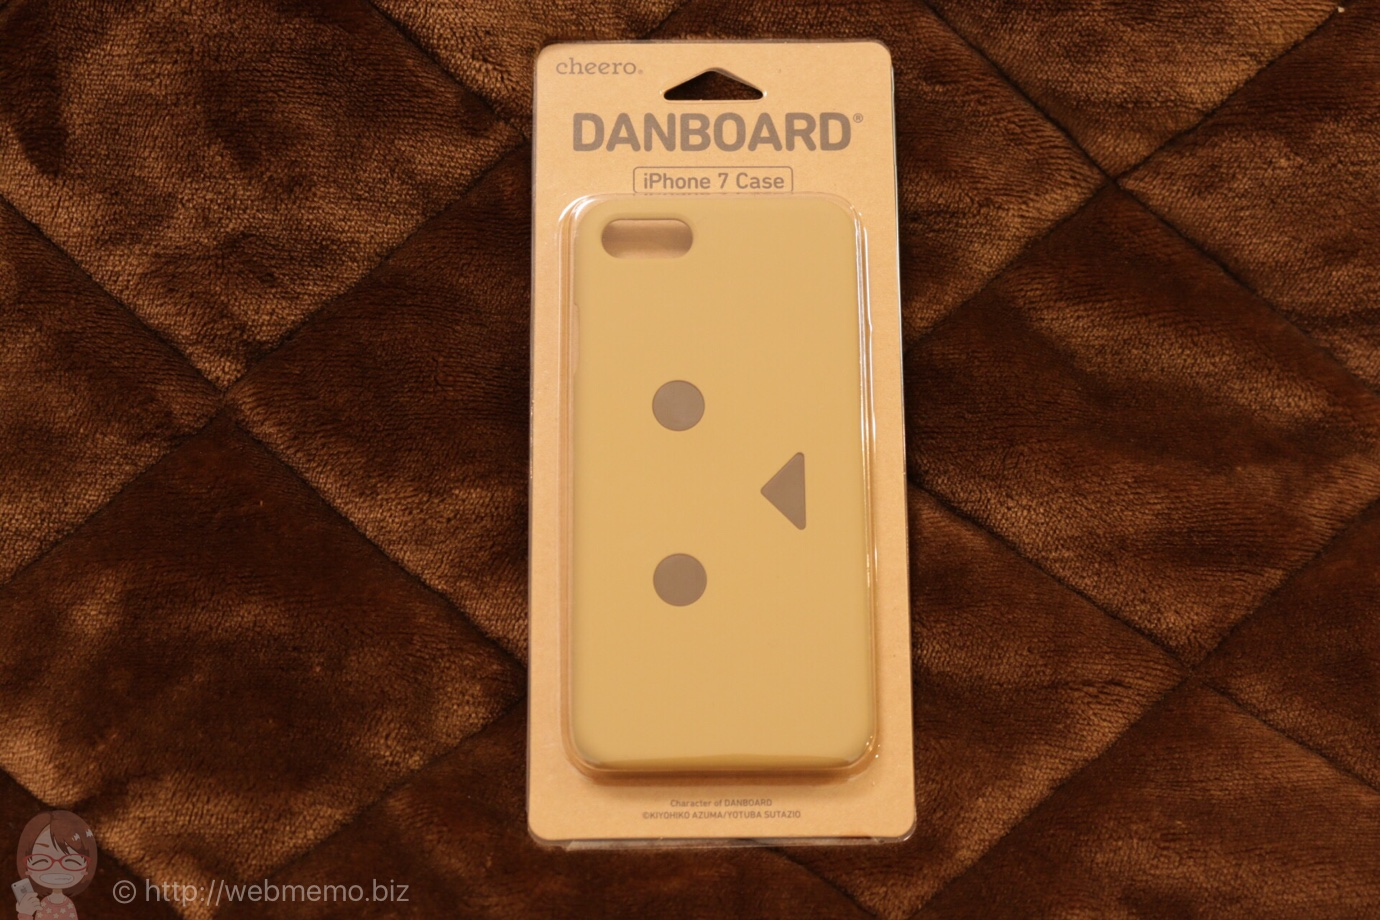 cheero Danboard Case for iPhone 7